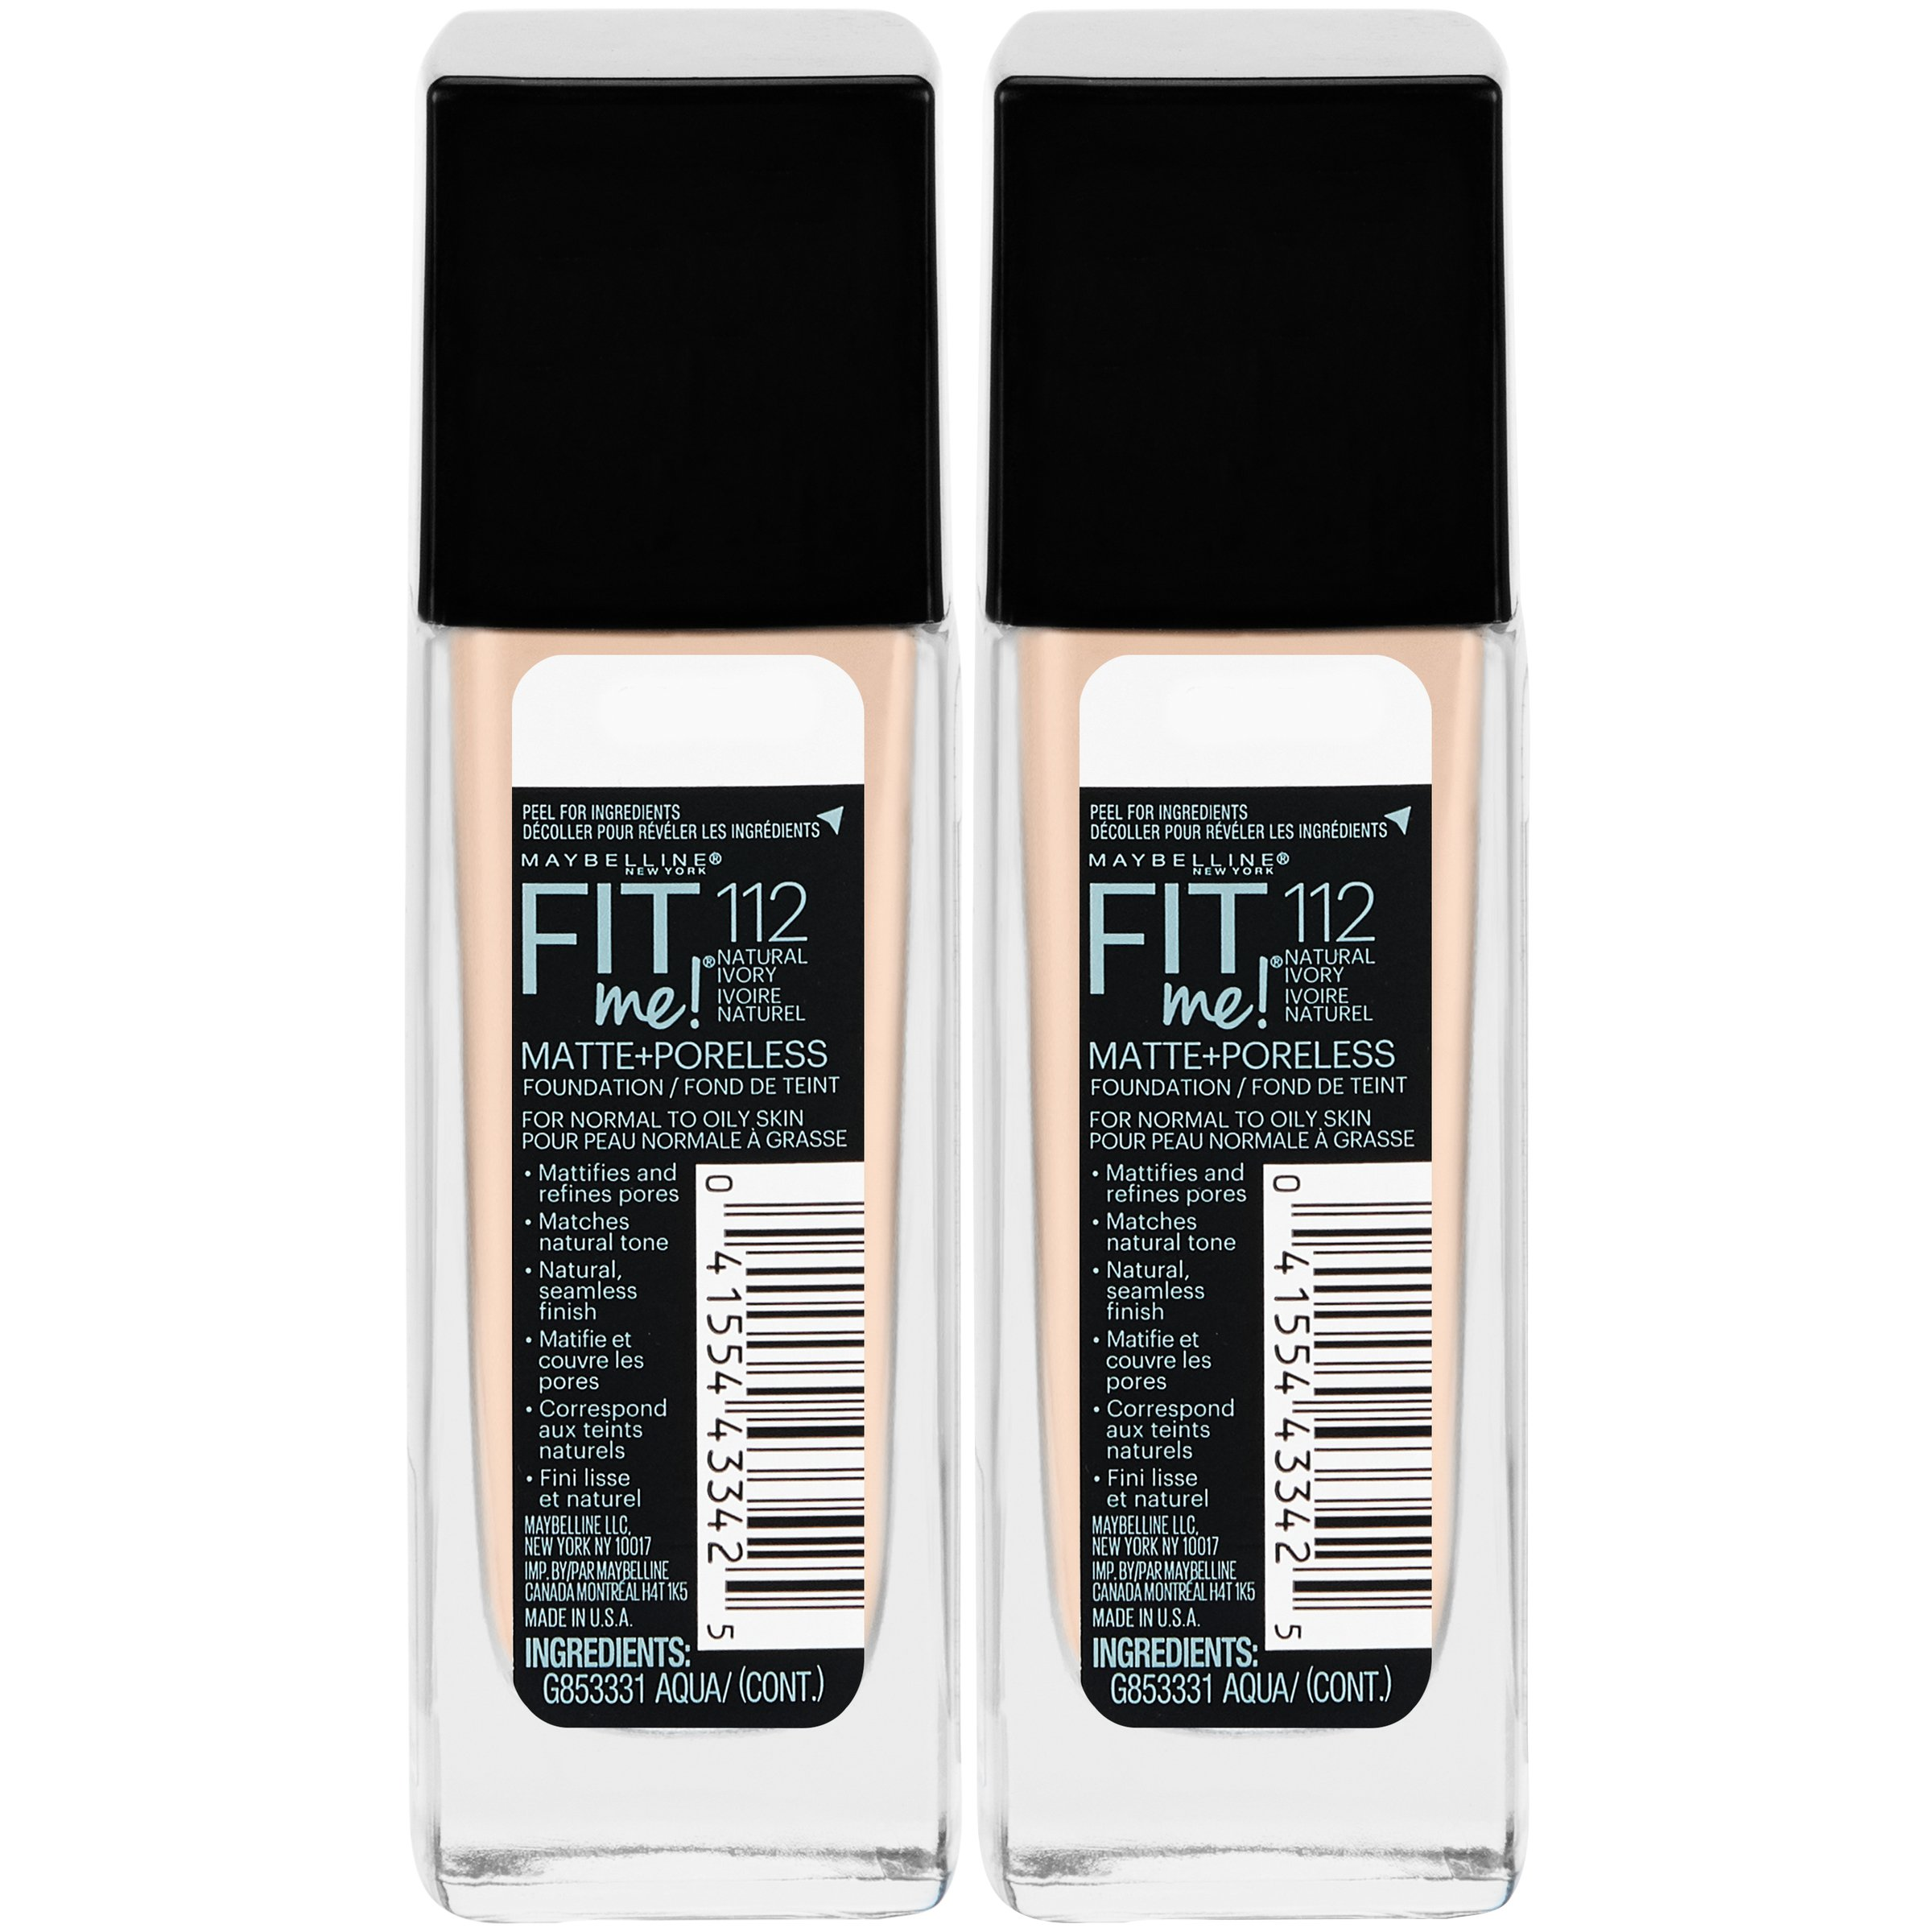 Maybelline New York Fit Me Matte + Poreless Liquid Foundation Makeup, Natural Ivory, 2 Count by Maybelline New York (Image #3)